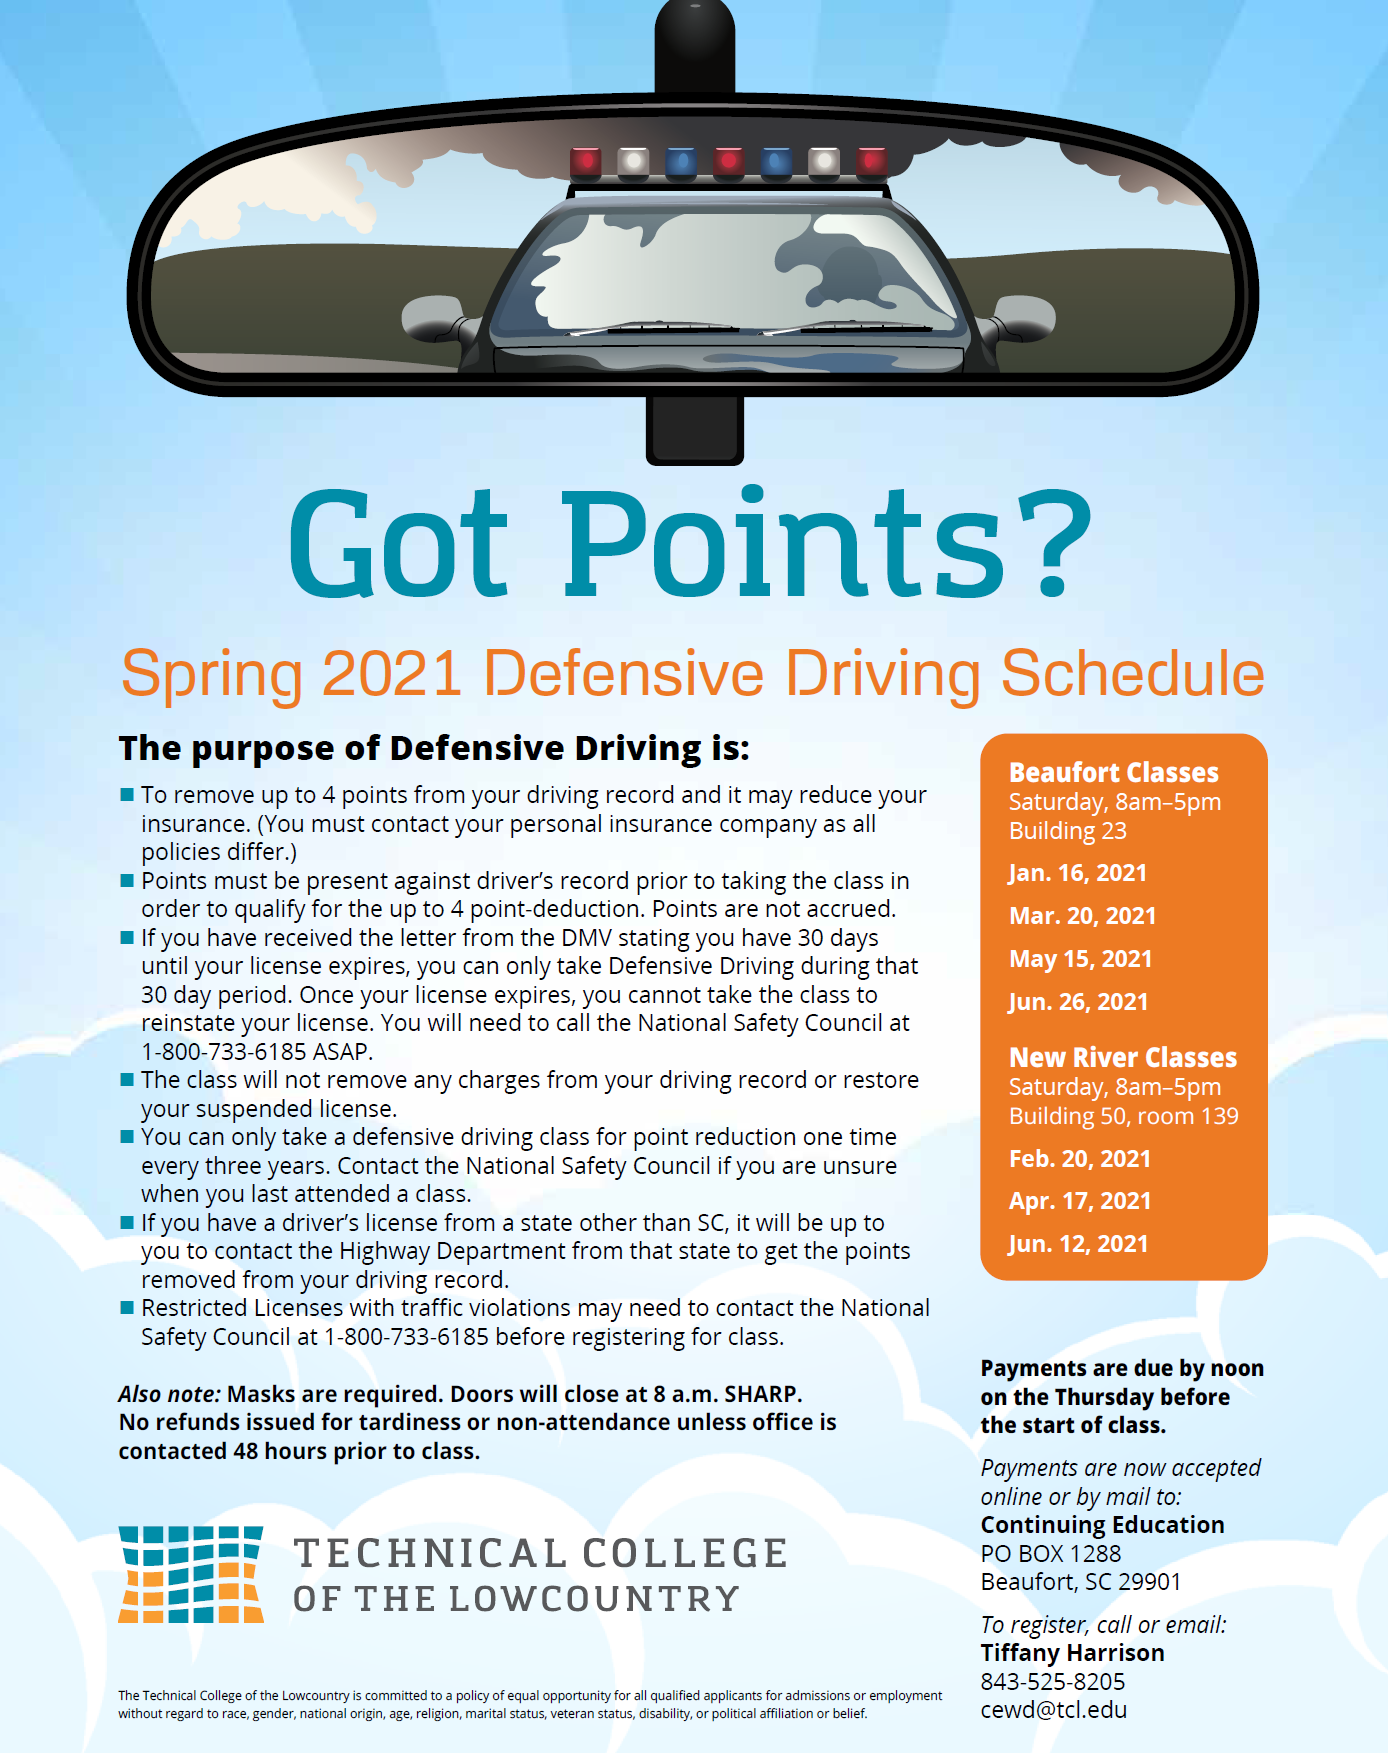 Spring 2021 Defensive Driving Schedule  Beaufort Classes Saturday, 8am–5pm Building 23  Jan. 16, 2021  Mar. 20, 2021  May 15, 2021  Jun. 26, 2021  New River Classes Saturday, 8am–5pm Building 50, room 139  Feb. 20, 2021  Apr. 17, 2021  Jun. 12, 2021  Payments are due by noon on the Thursday before the start of class.  Payments are now accepted online or by mail to: Continuing Education PO BOX 1288 Beaufort, SC 29901  To register, call or email: Tiffany Harrison 843-525-8205 cewd@tcl.edu